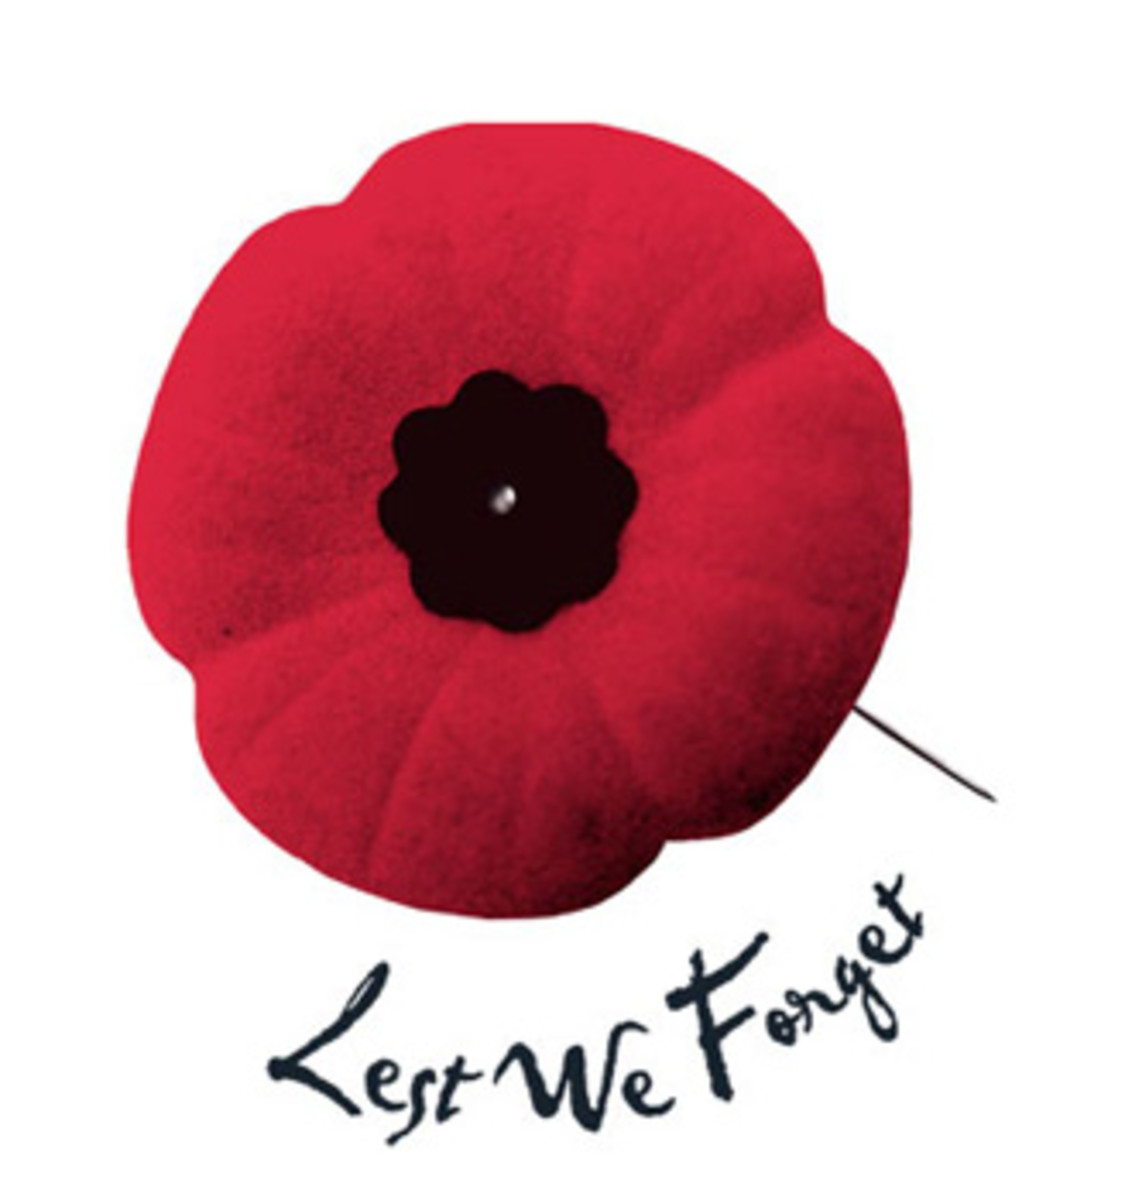 Remembrance Day, Poppy Day, Veterans Day - Remembering Our Fallen Heroes: Lest We Forget